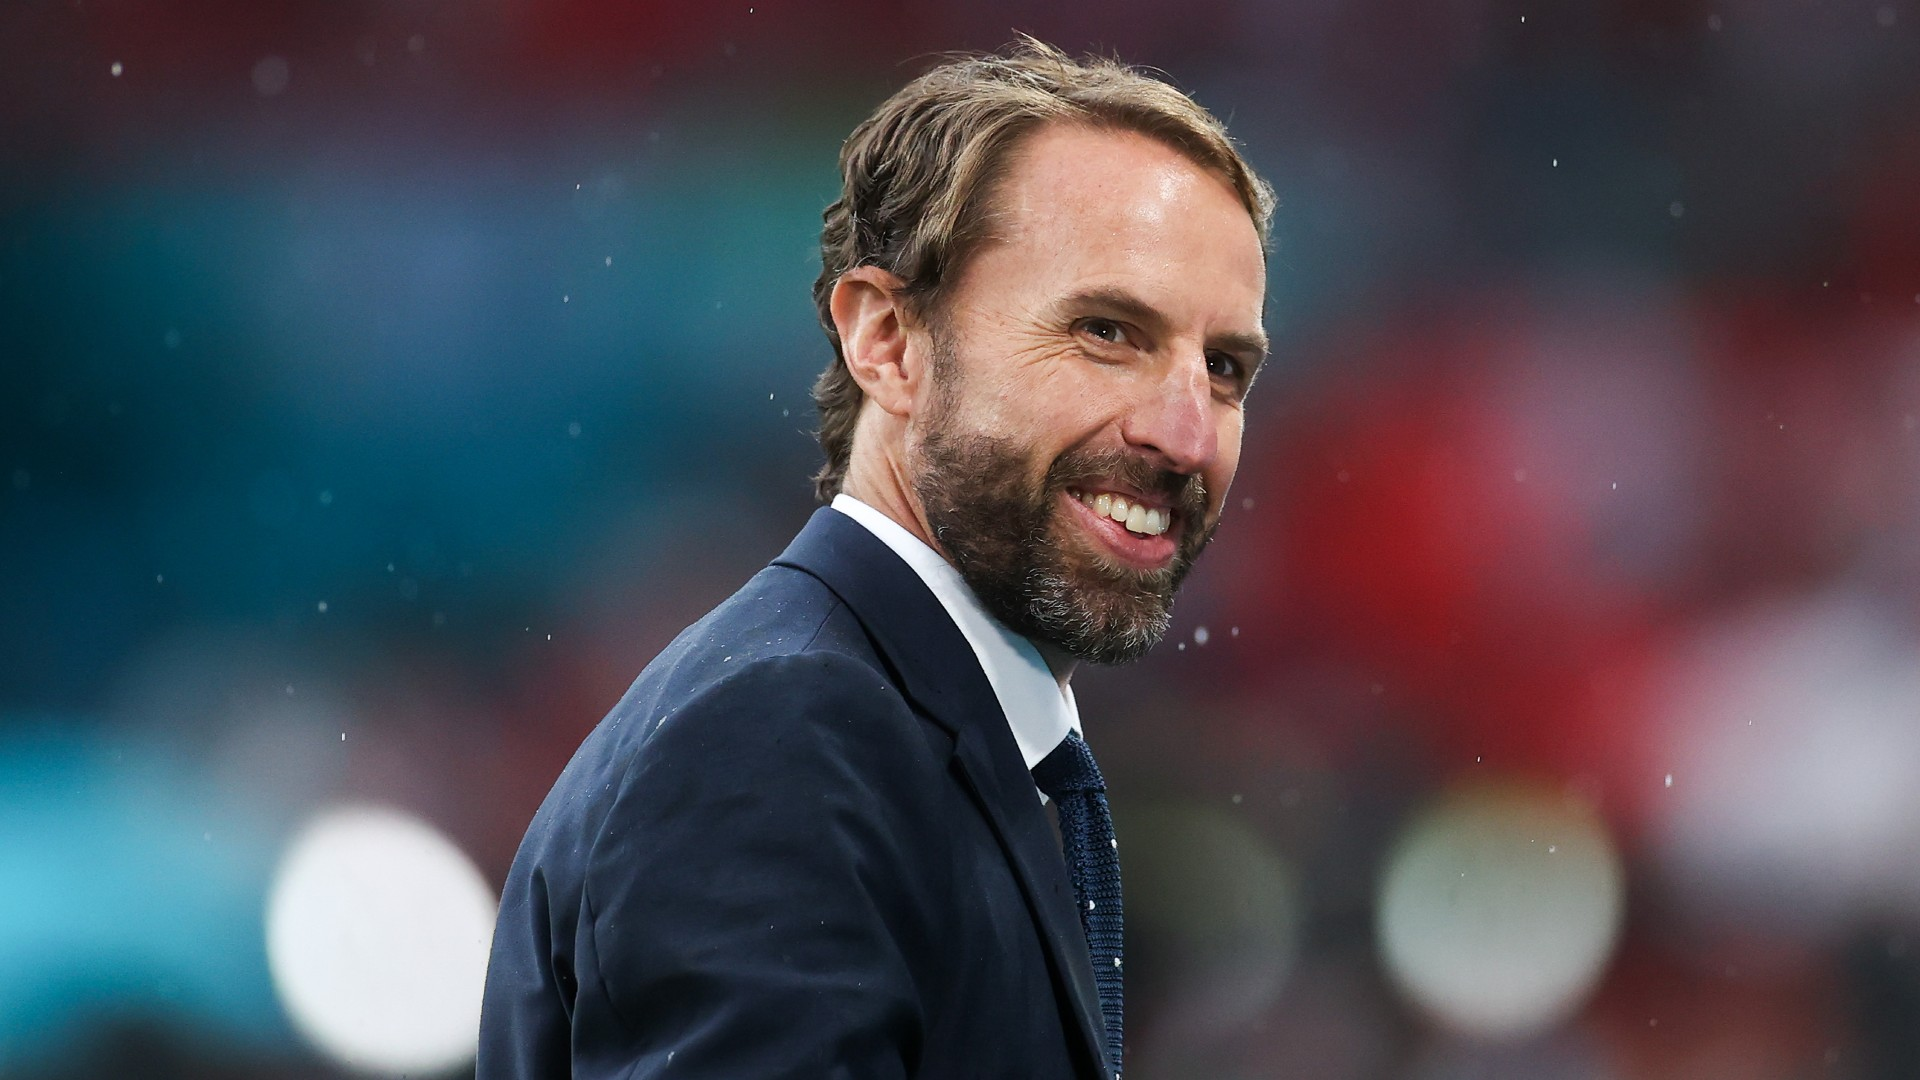 'We should look at how we scout' - Southgate wants England to seek stars of South Asian descent